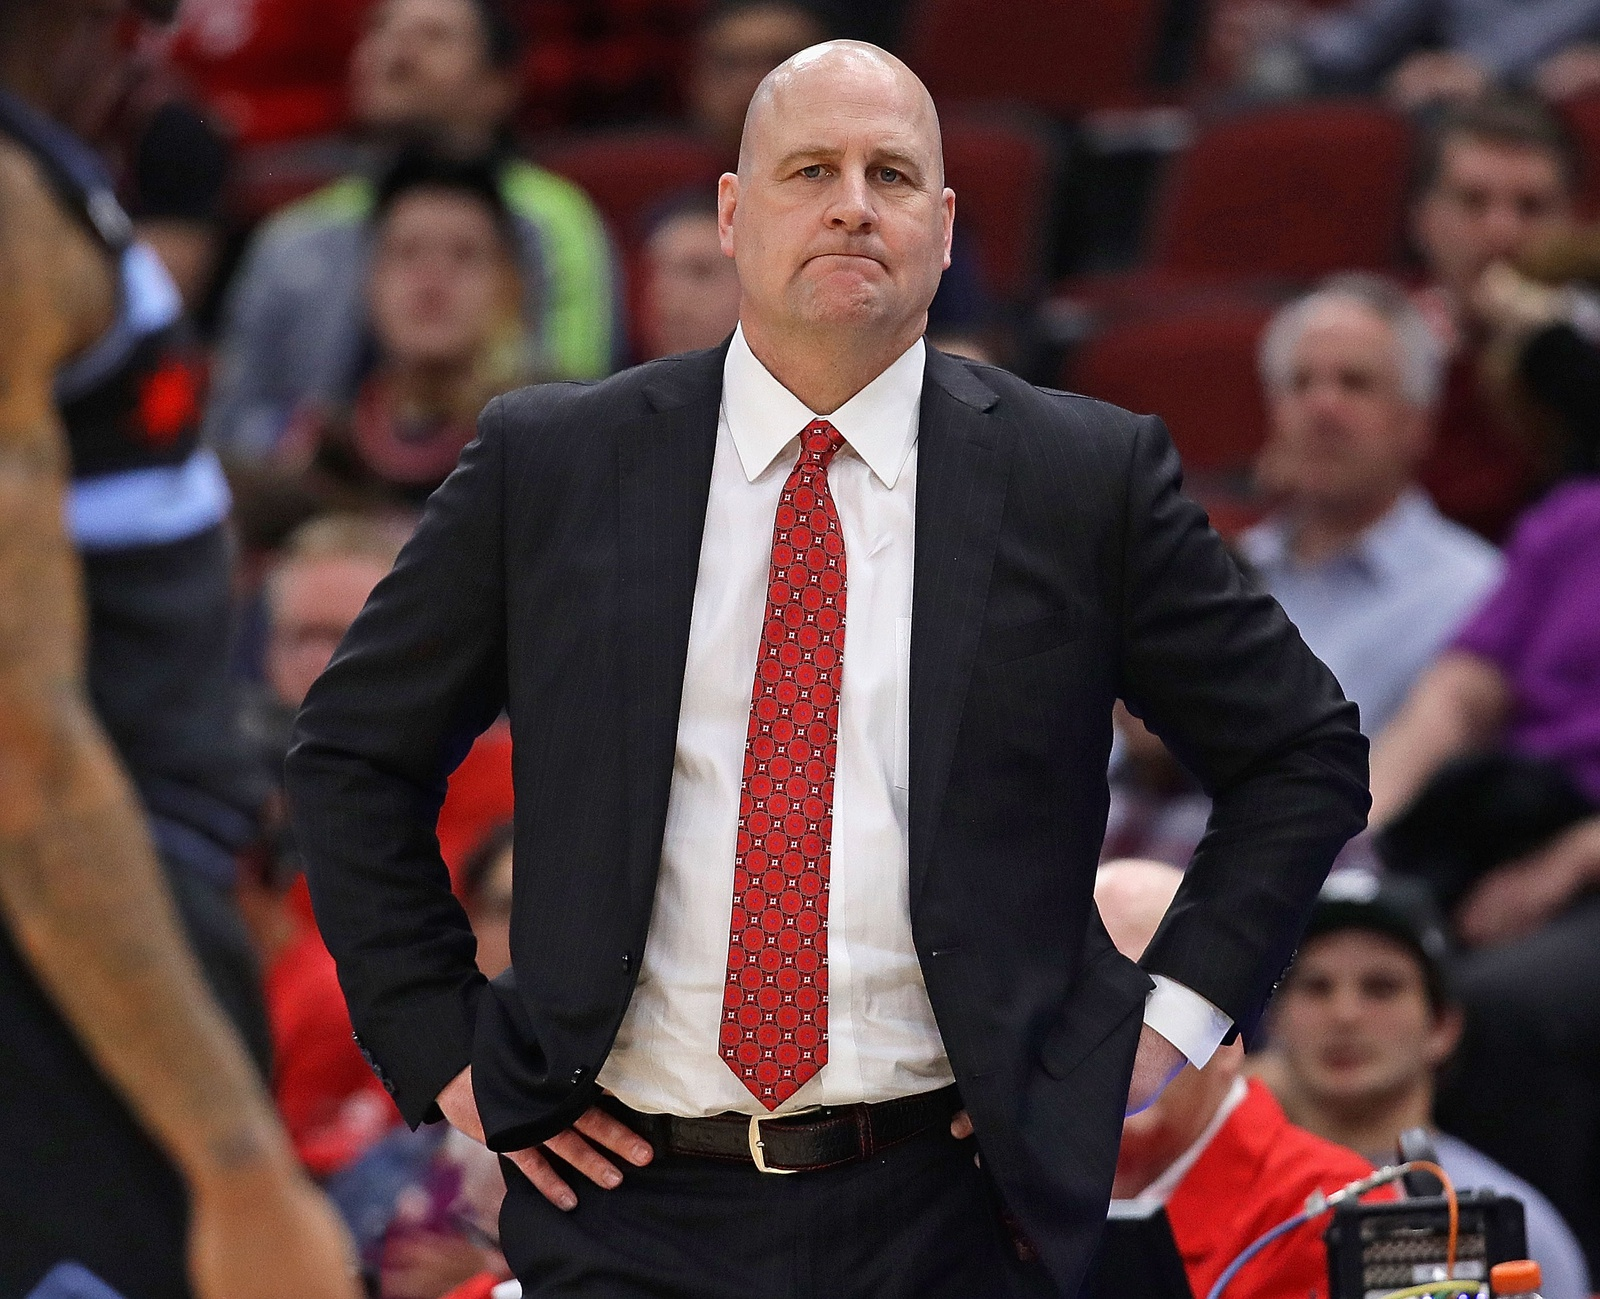 Jim Boylen of the Chicago Bulls reacts as his team takes on the New York Knicks at the United Center on April 09, 2019 in Chicago, Illinois. The Knicks defeated the Bulls 96-86.